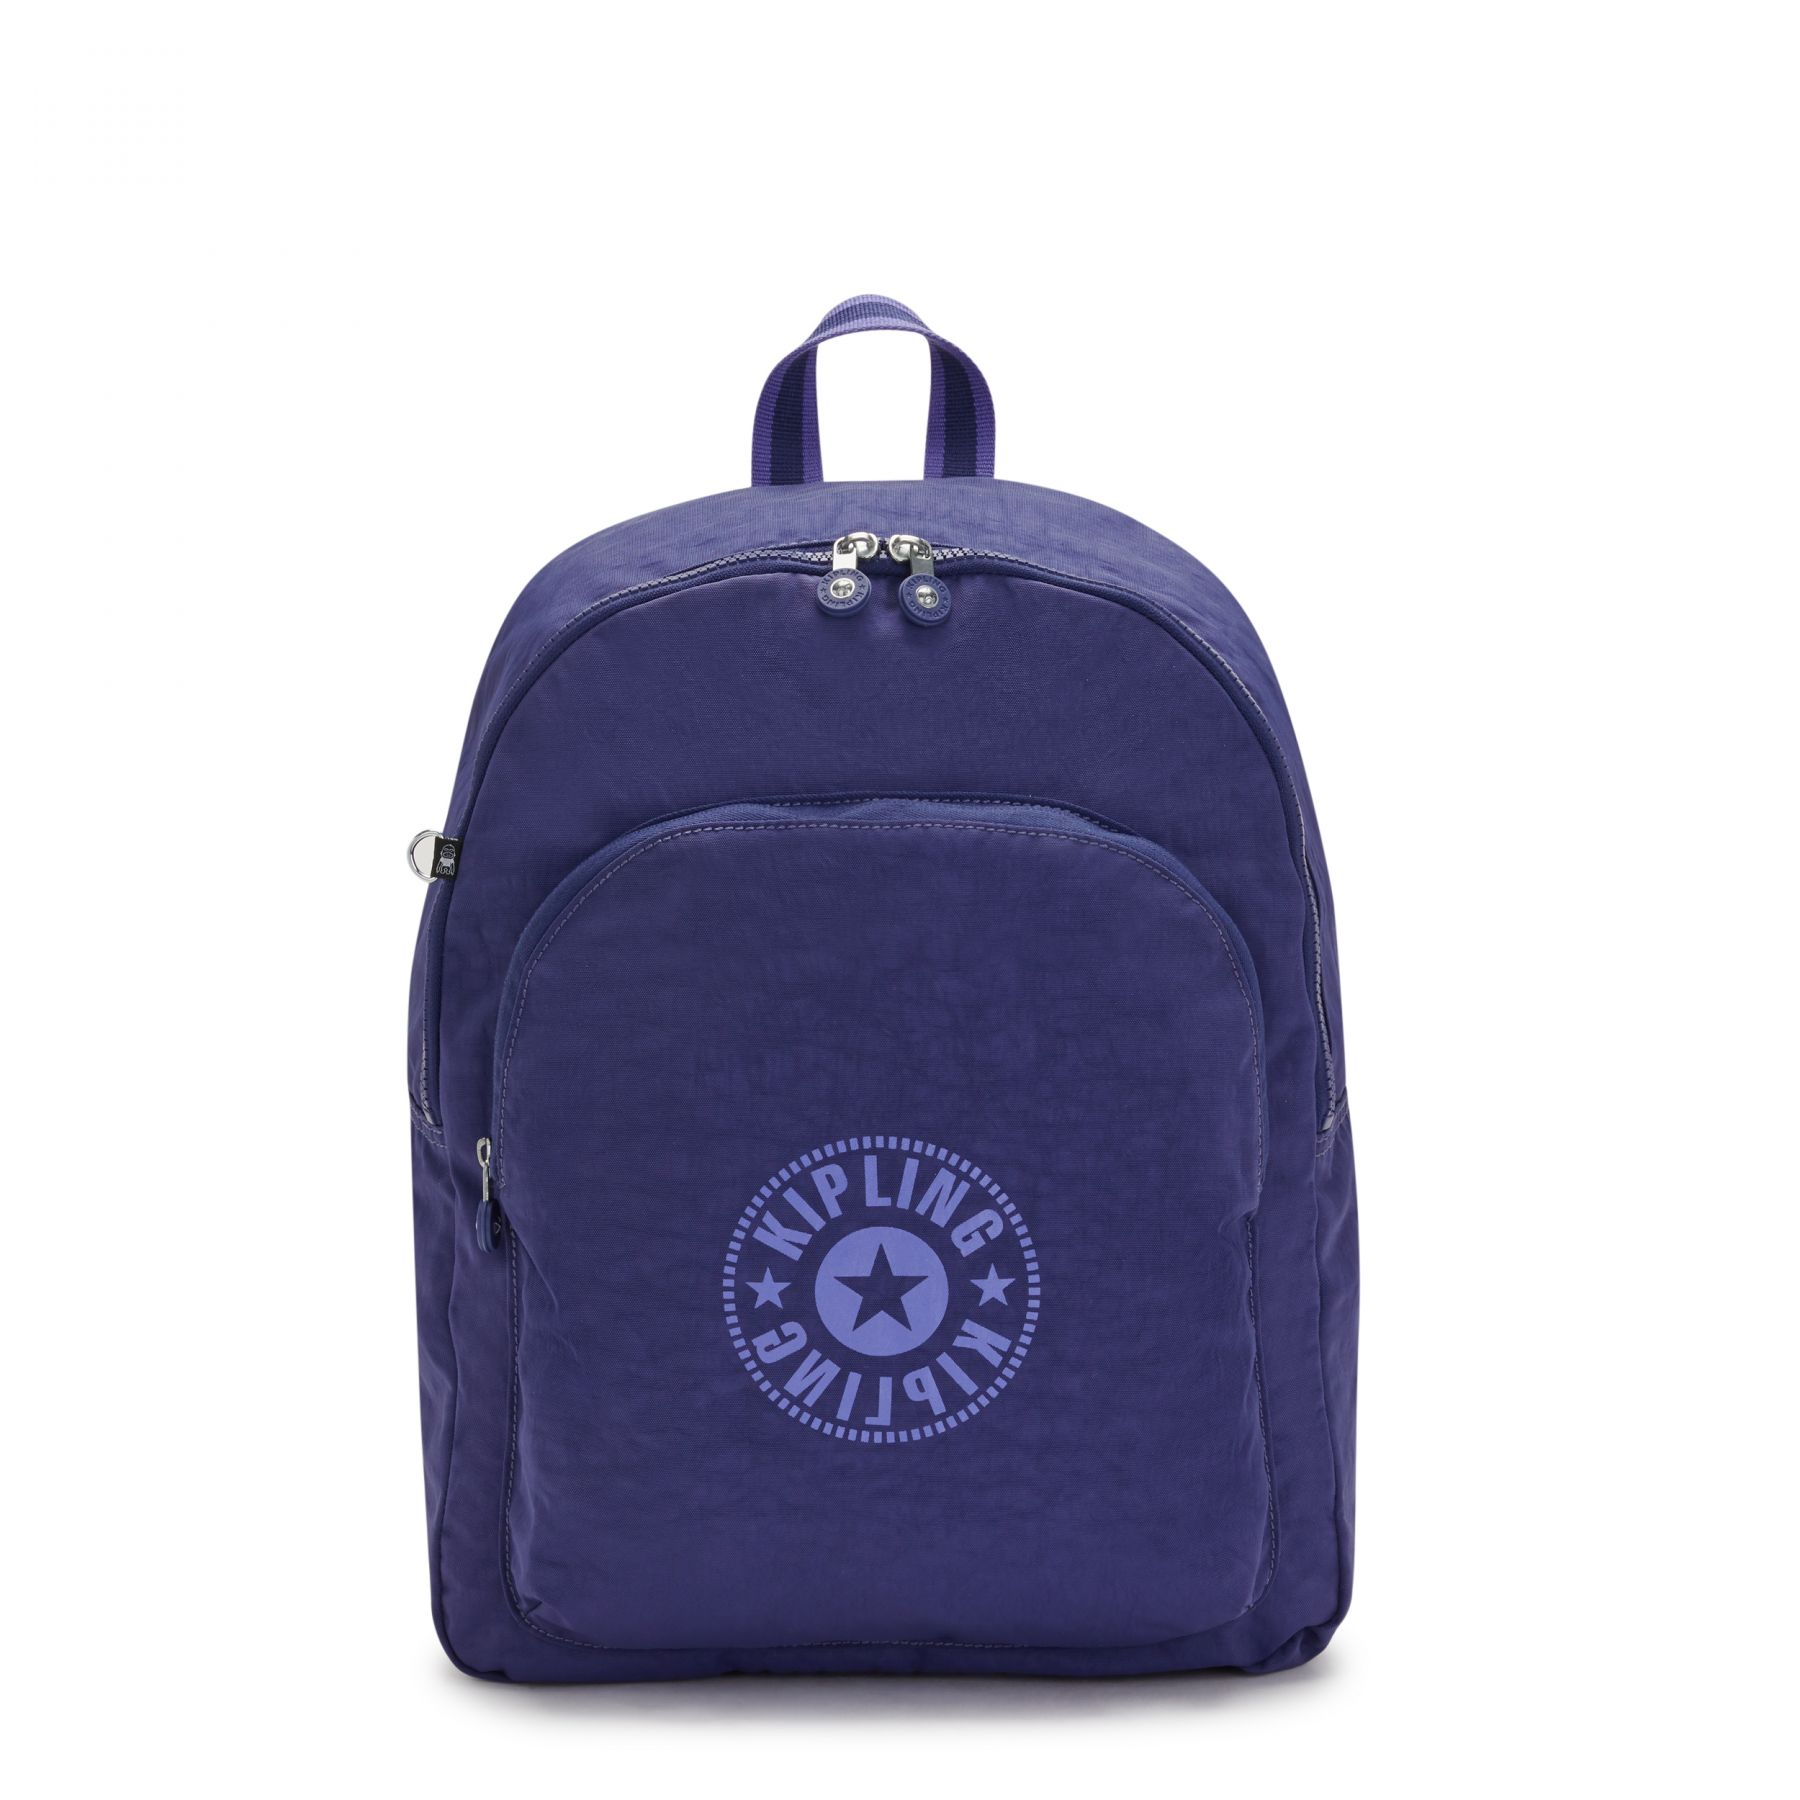 CURTIS L BACKPACKS by Kipling - Front view